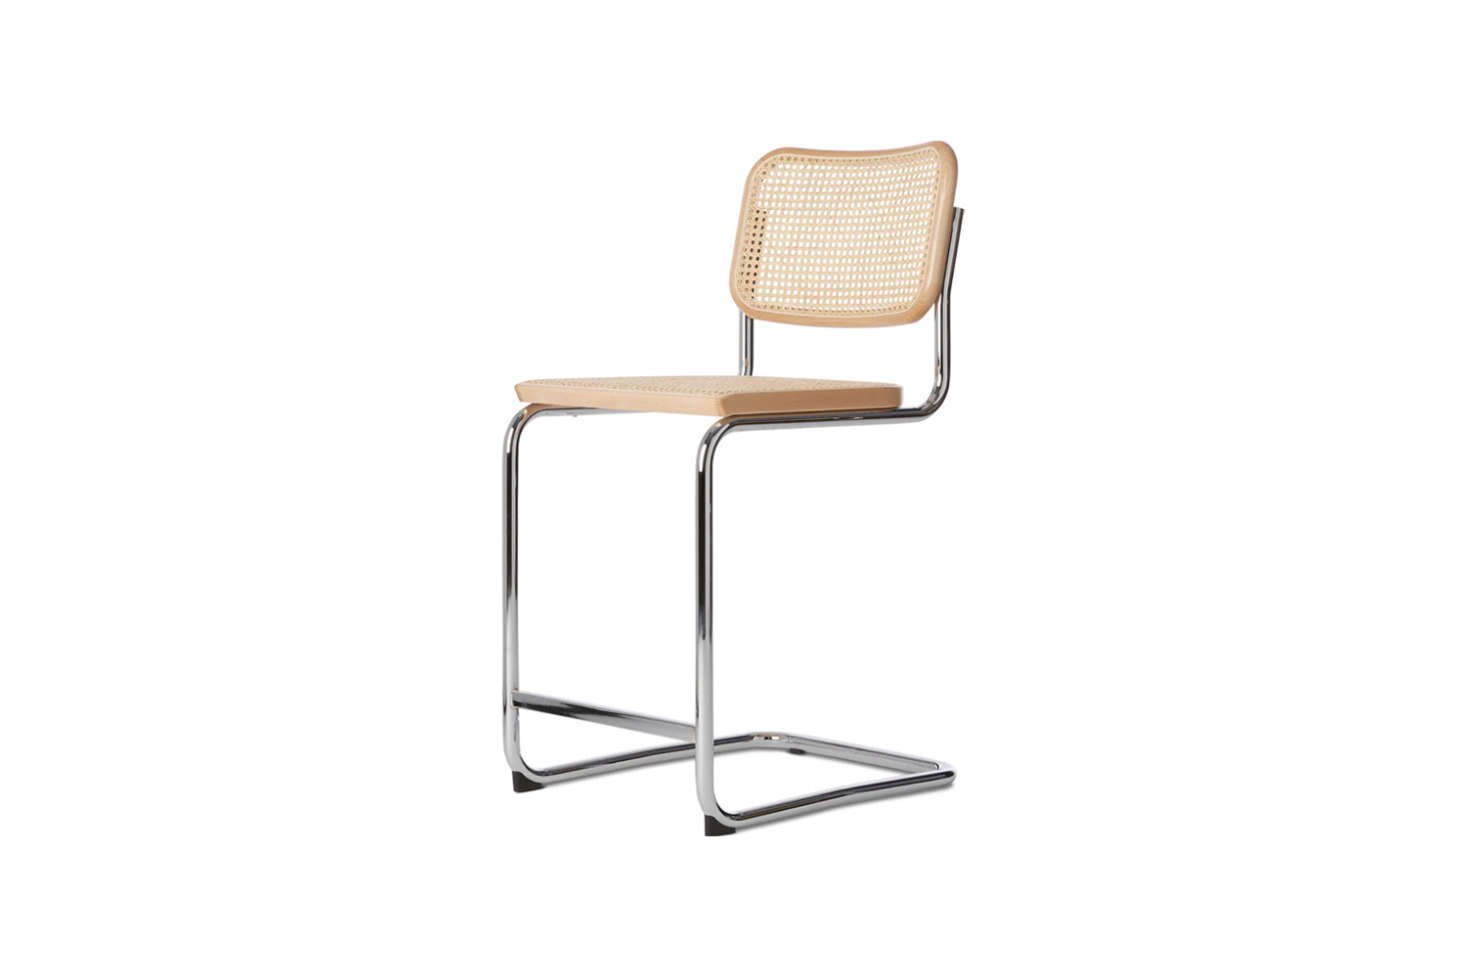 The Cesca Counter Stool in black or natural wood is $src=